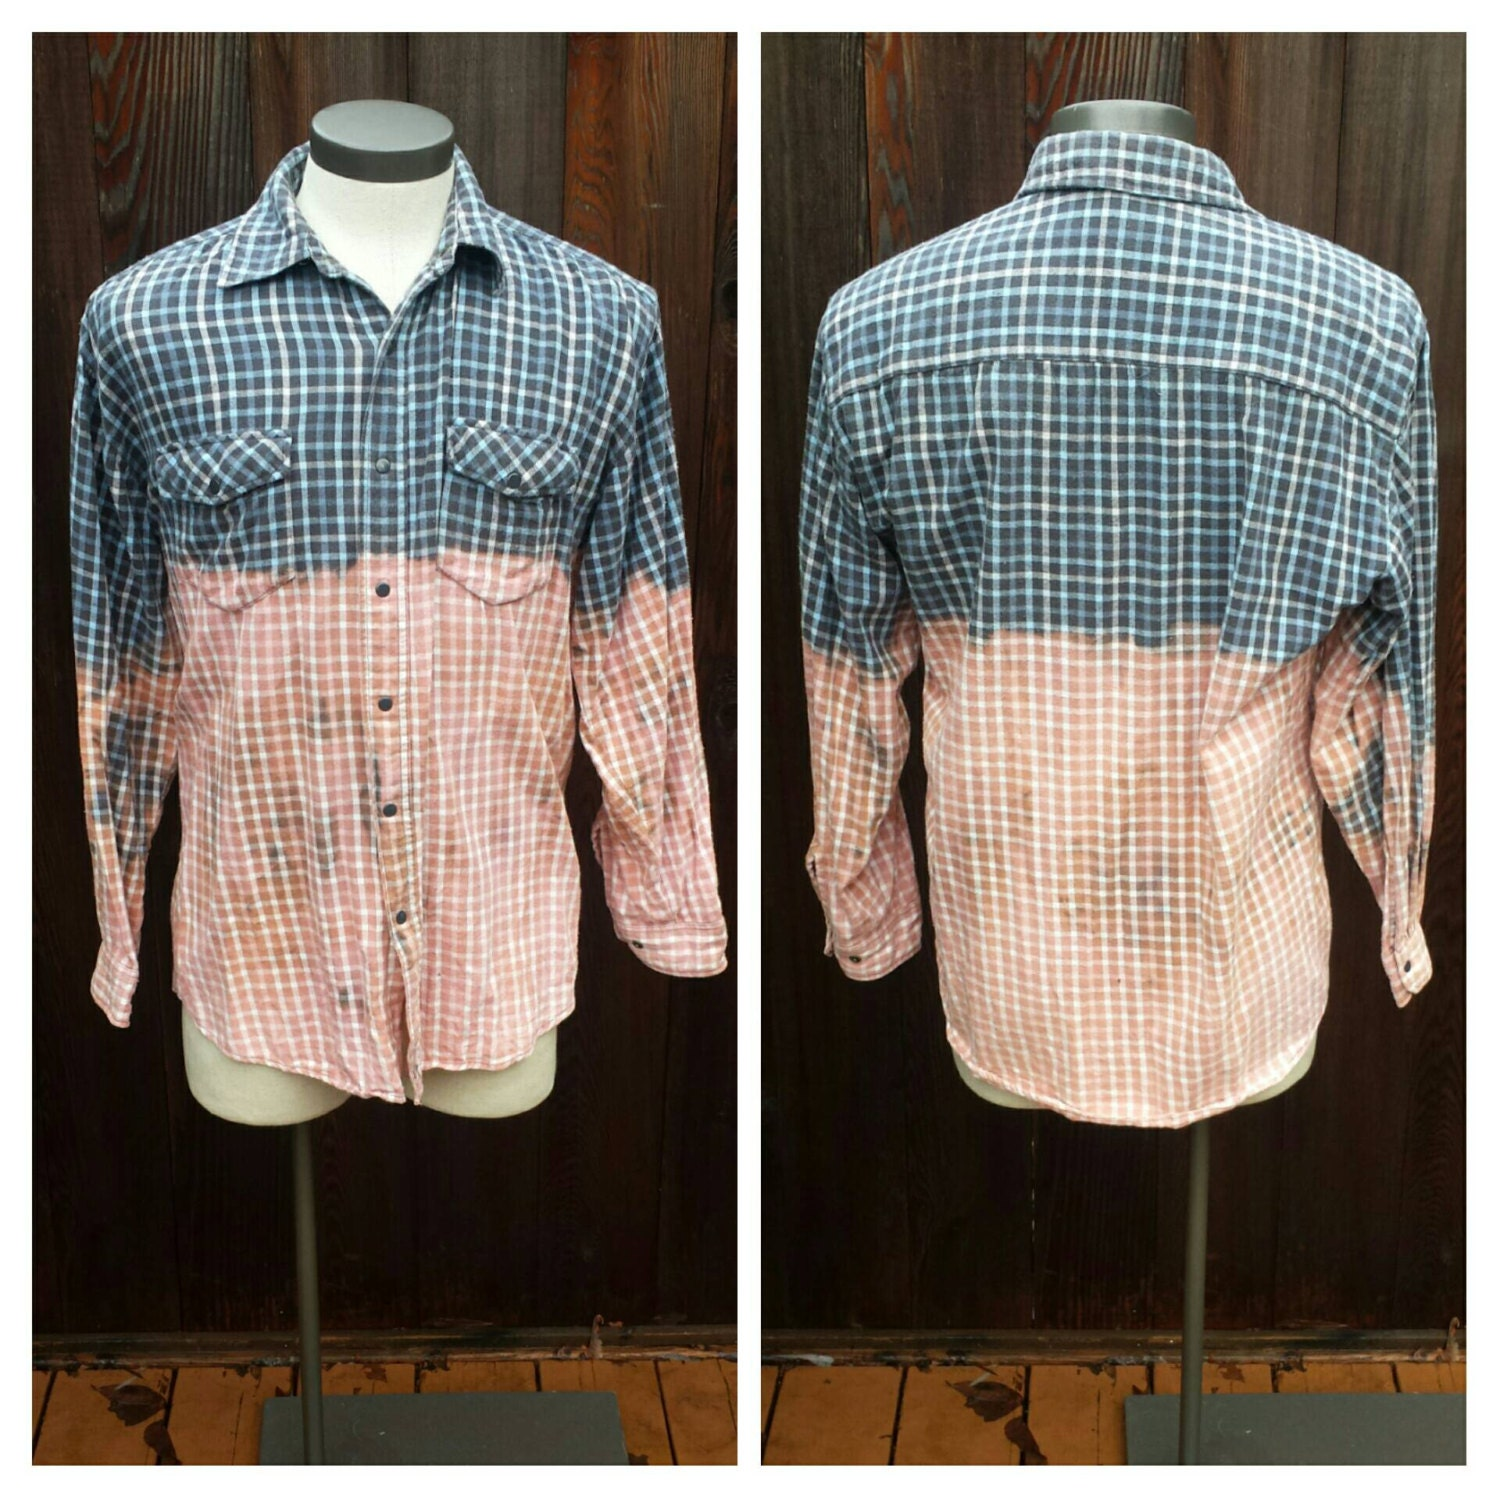 Upcycled Clothing Dip Dyed Light Blue And Grey Flannel Shirt